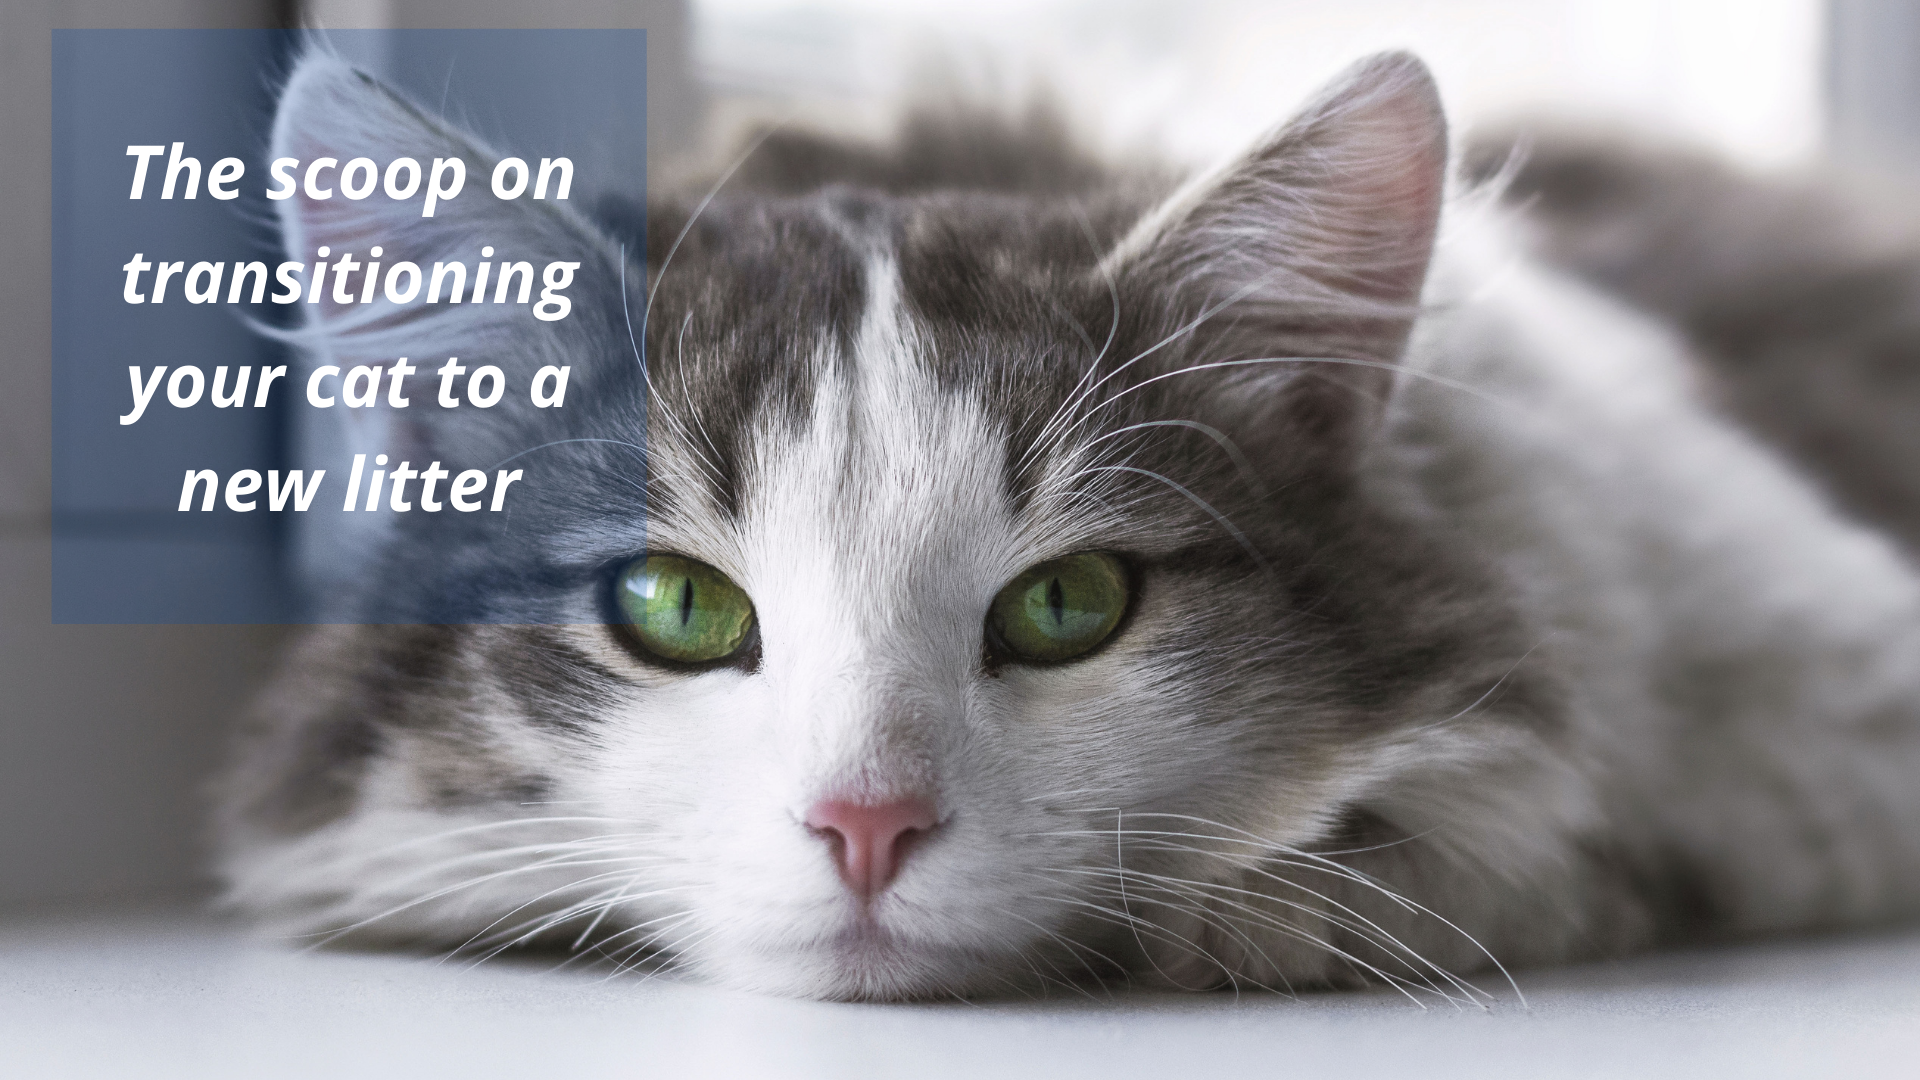 The Scoop on Transitioning Your Cat to a New Litter